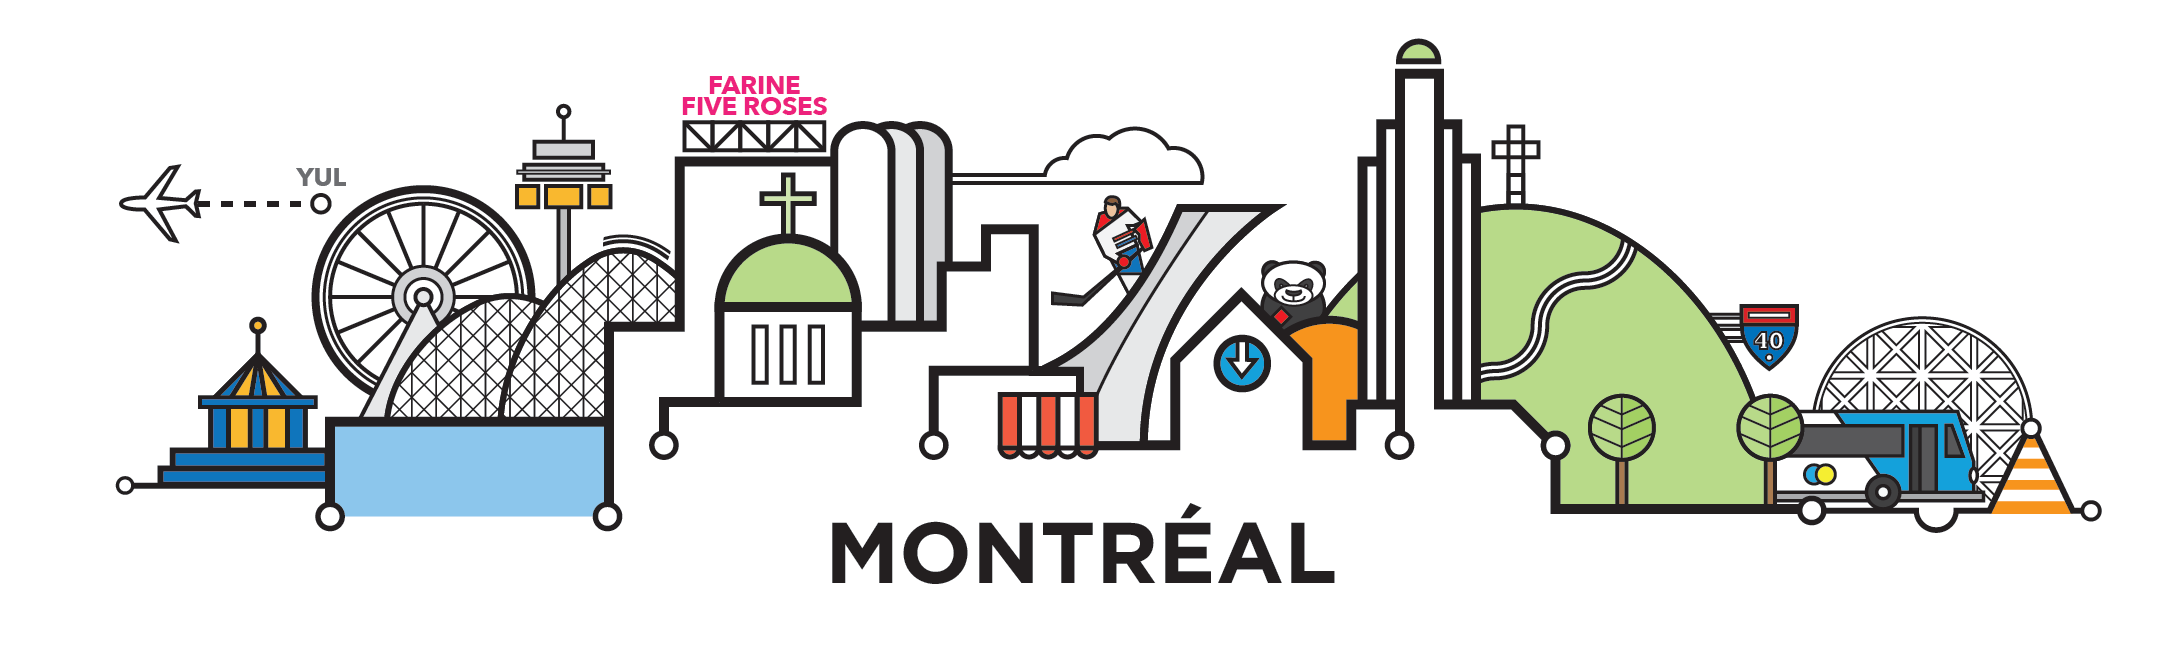 montreal-cityline-illustration-by-loogart